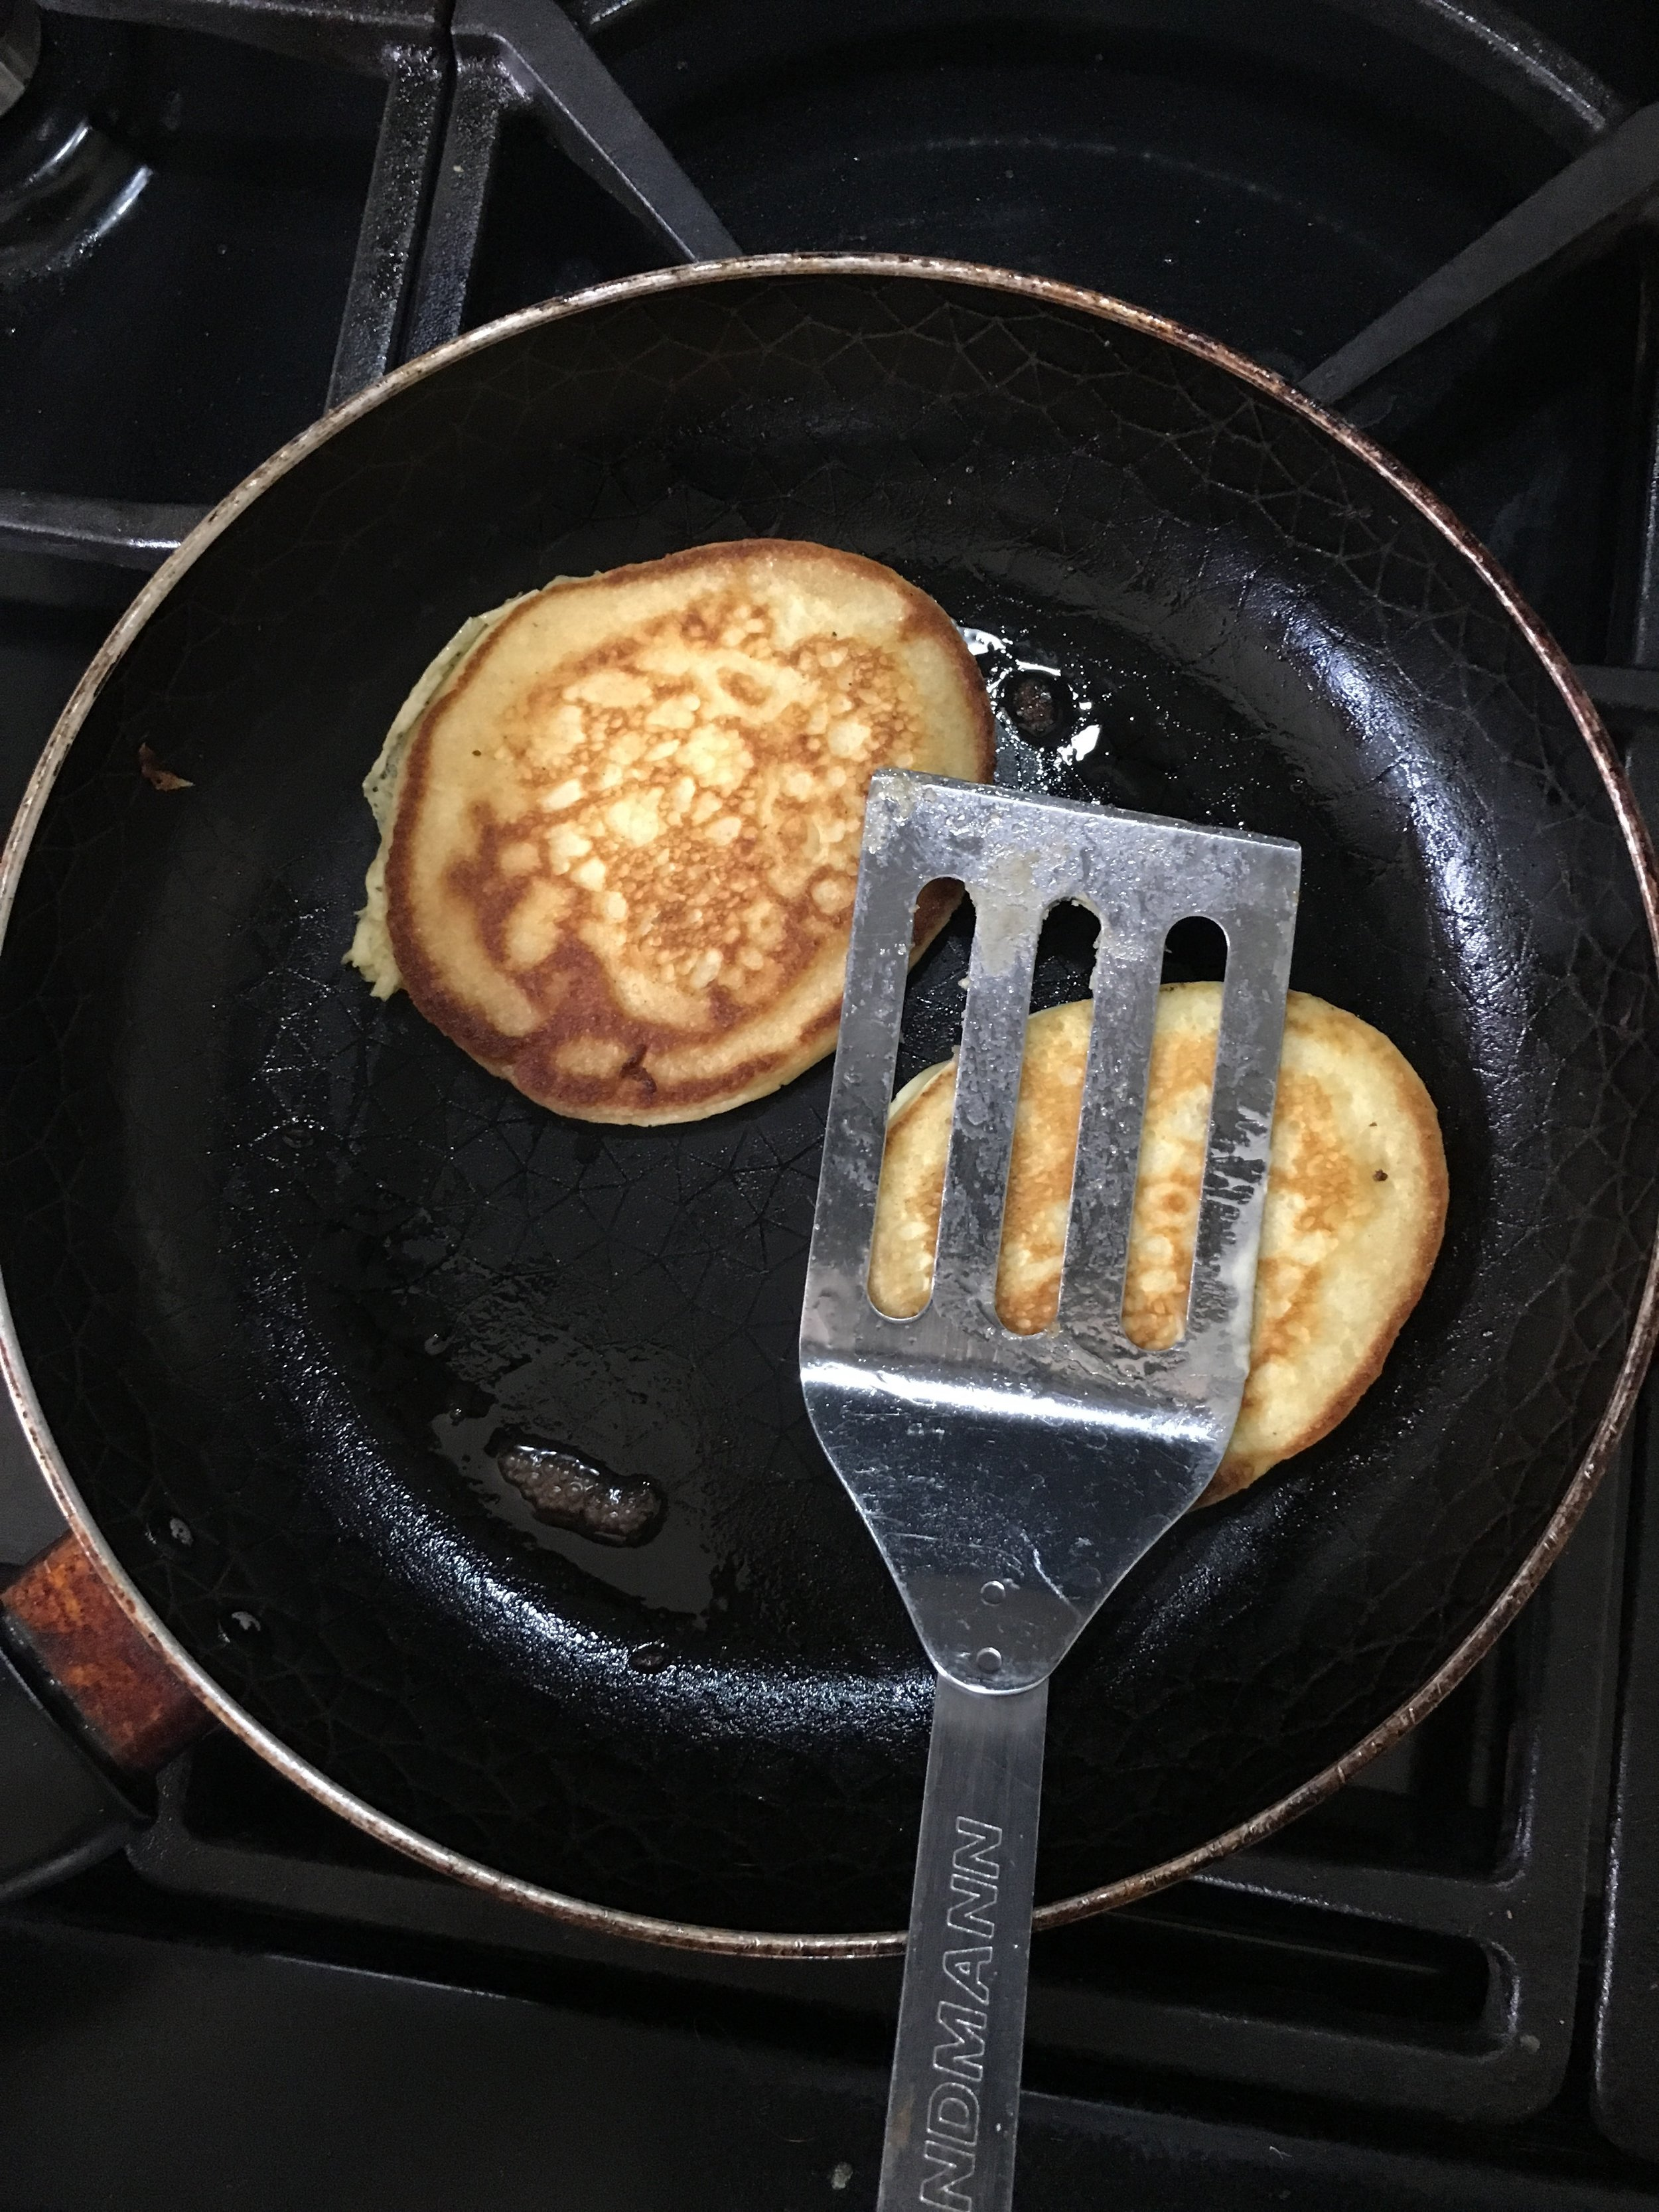 Squash the pancakes a little with a fish slice